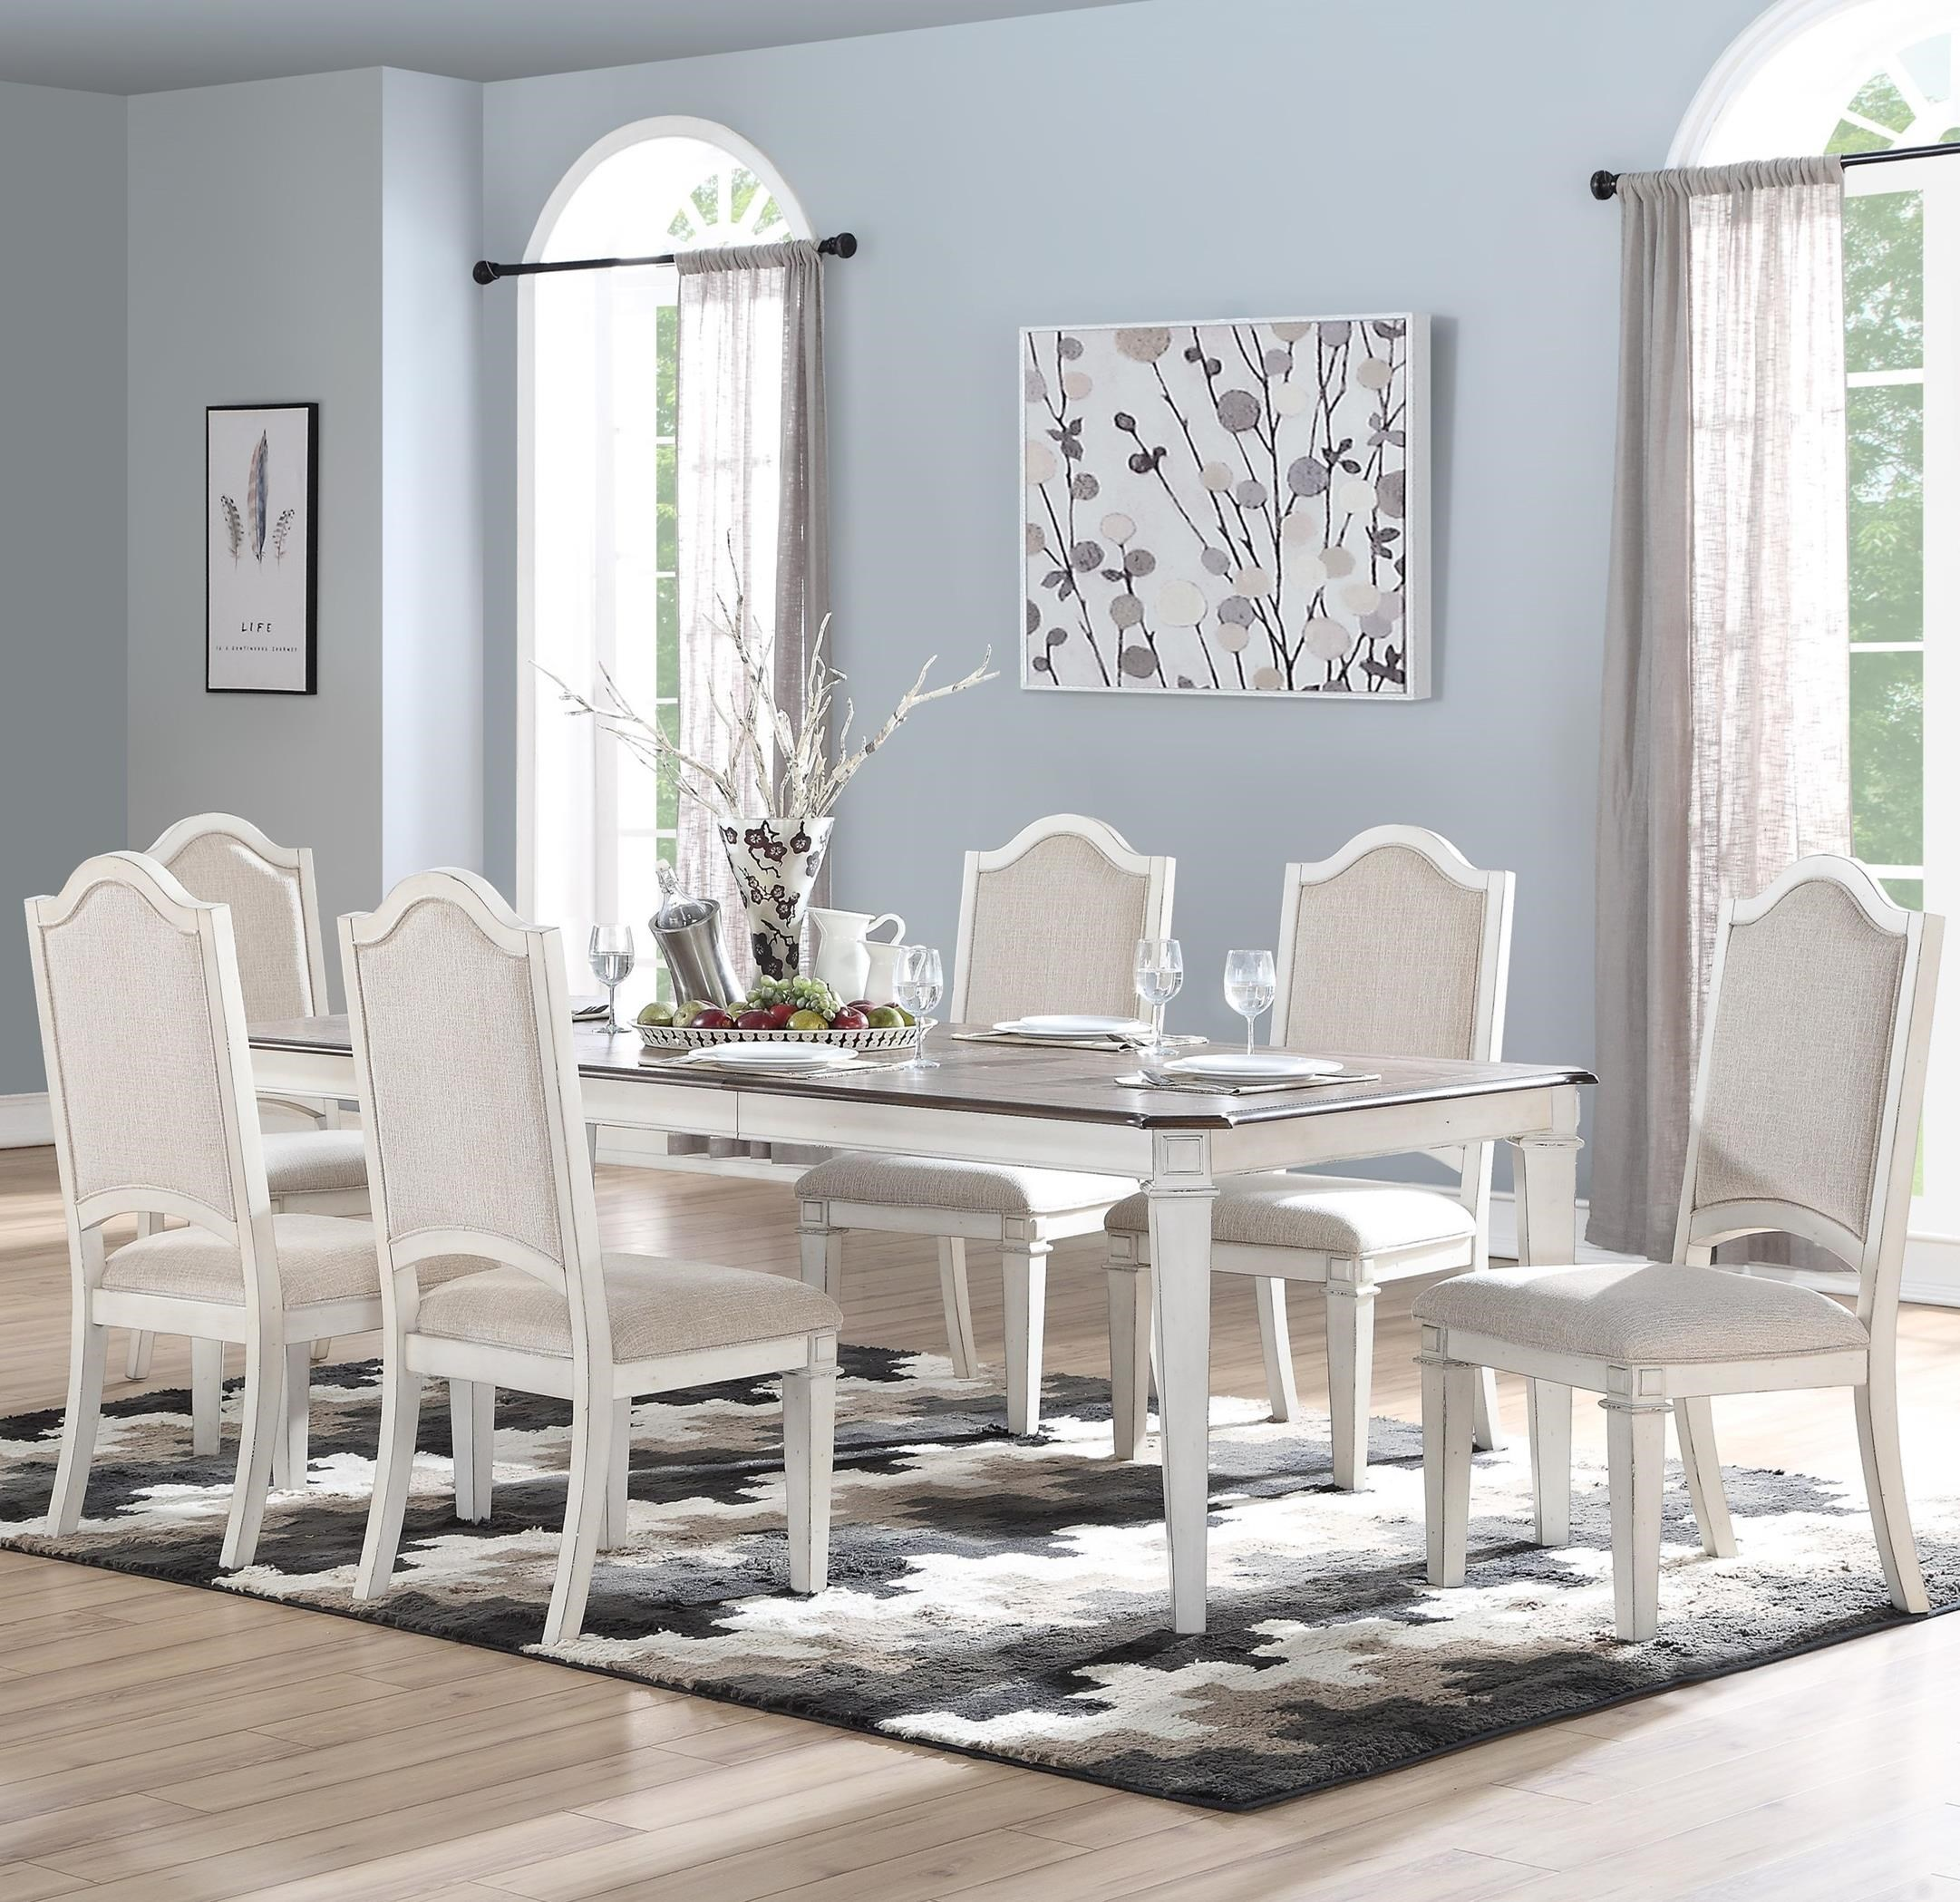 Anastasia 7-Piece Table and Chair Set by New Classic at Rife's Home Furniture